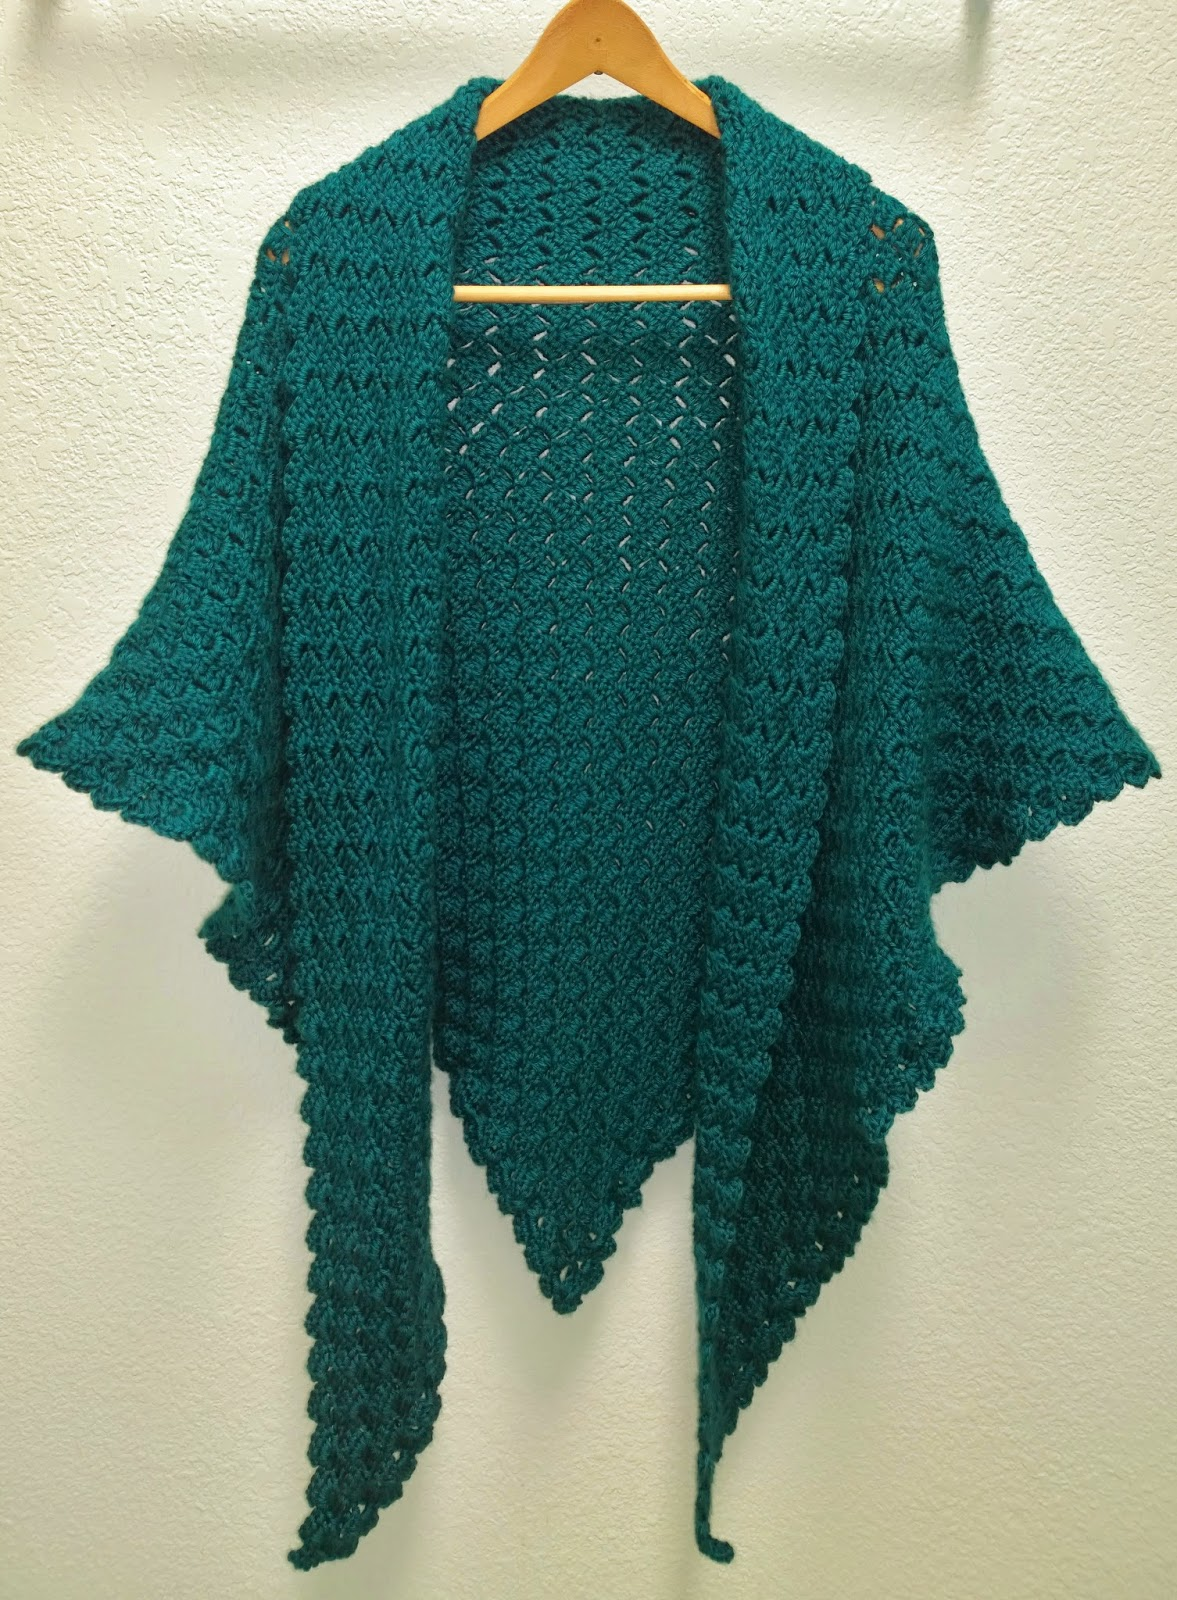 Nonsense corner to corner triangle shawl corner to corner triangle shawl bankloansurffo Image collections